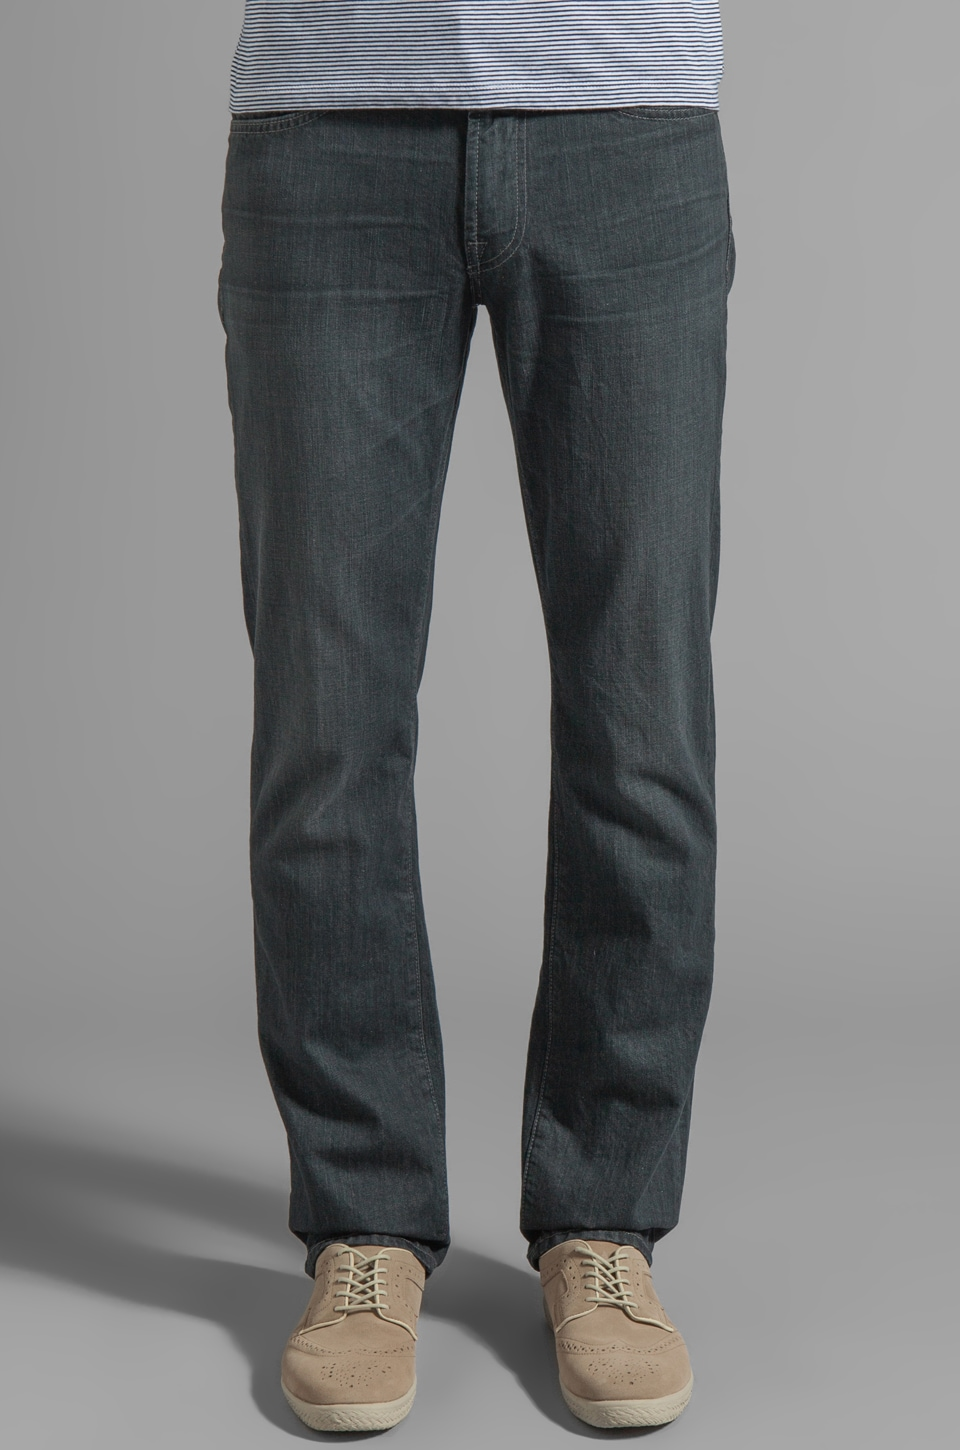 7 For All Mankind Slimmy in Glenview Grey